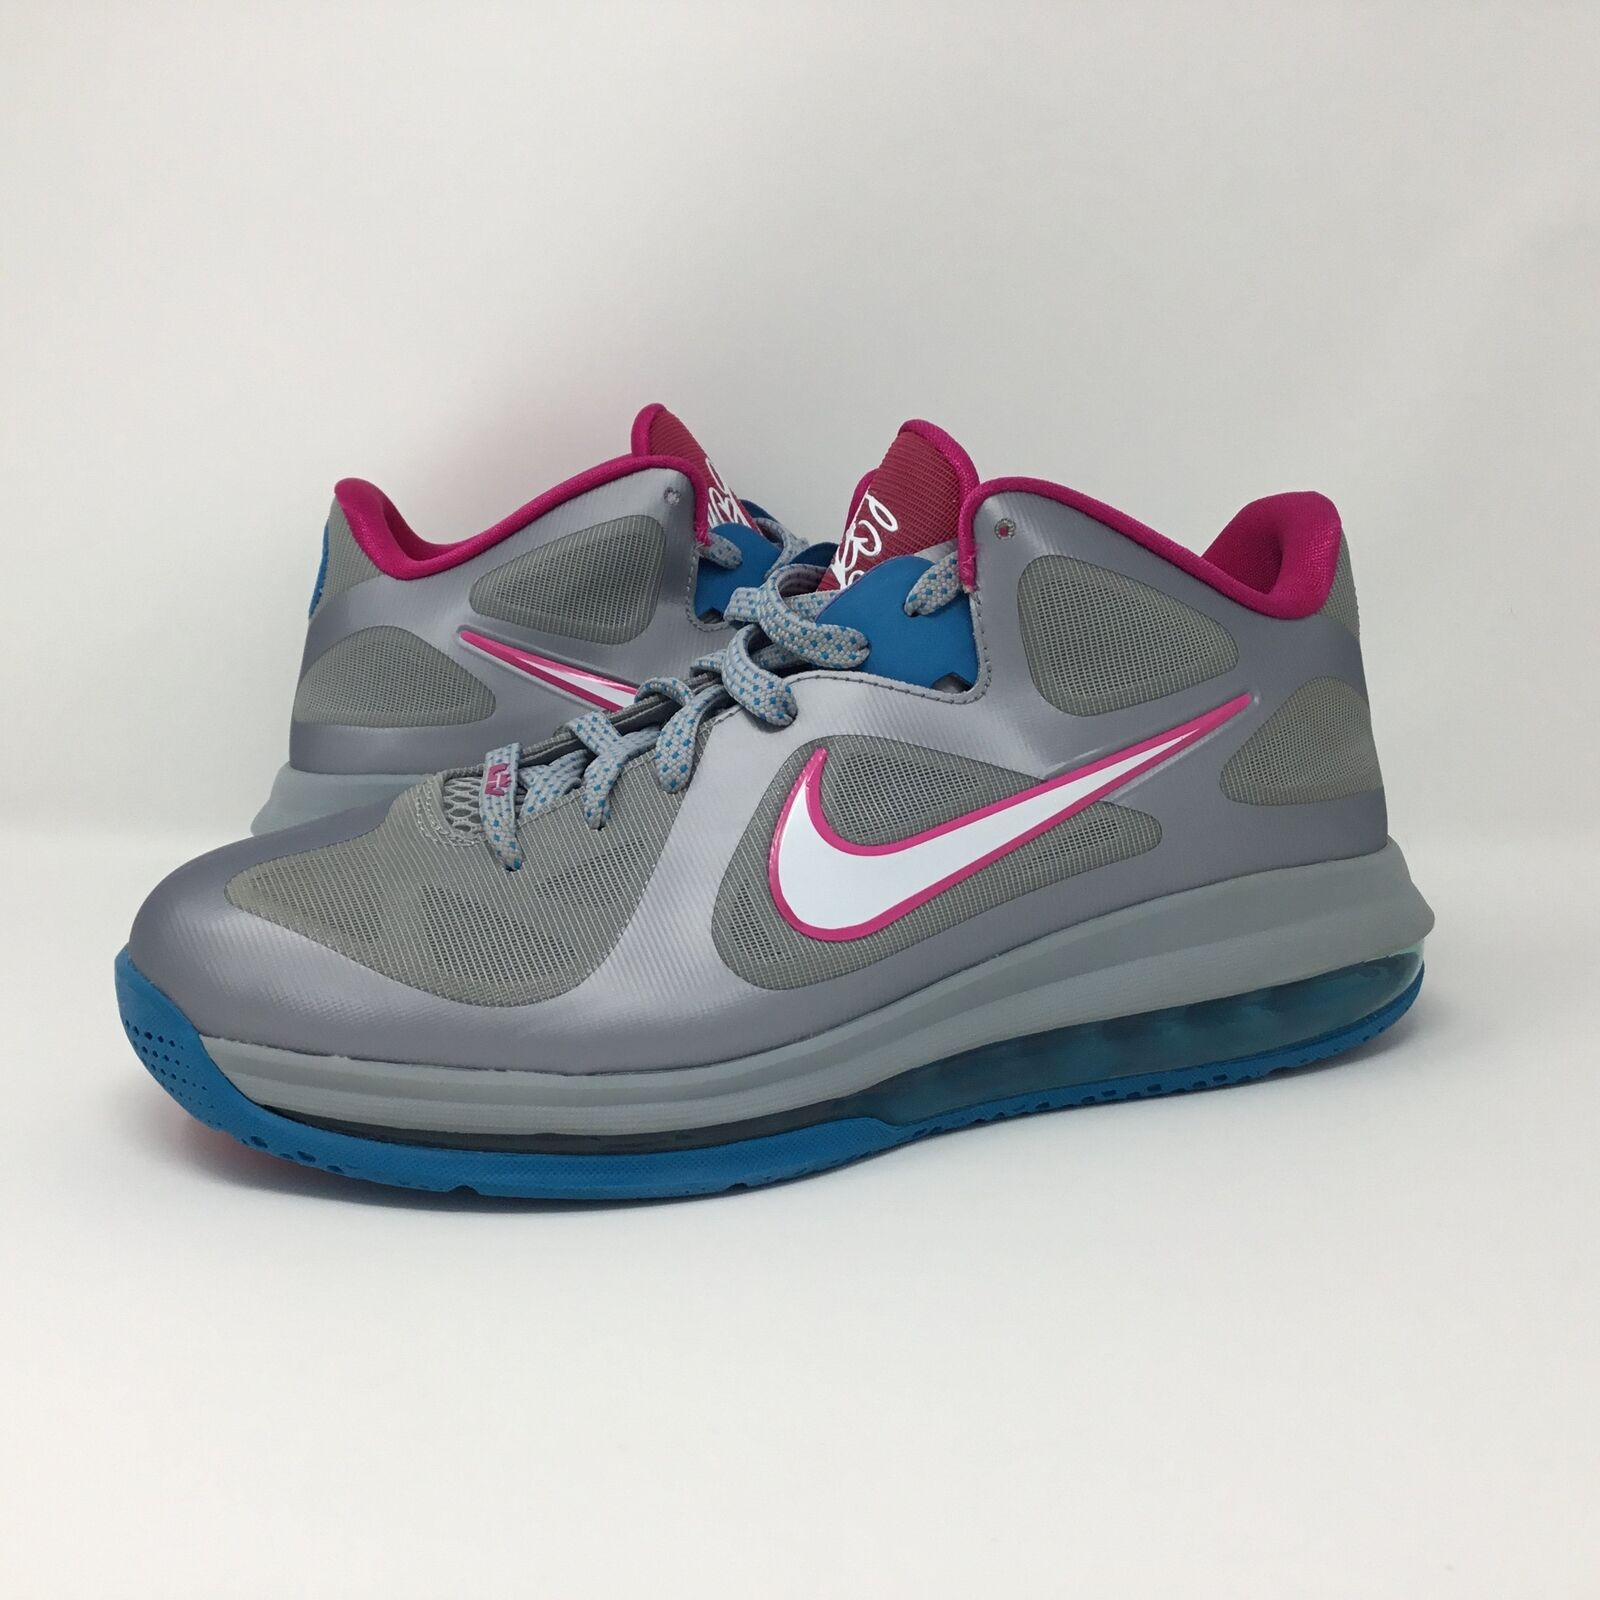 super popular 8fe02 25457 Nike Lebron 9 IX Low Fireberry sz 8.5 8.5 8.5 DS d3a8c7